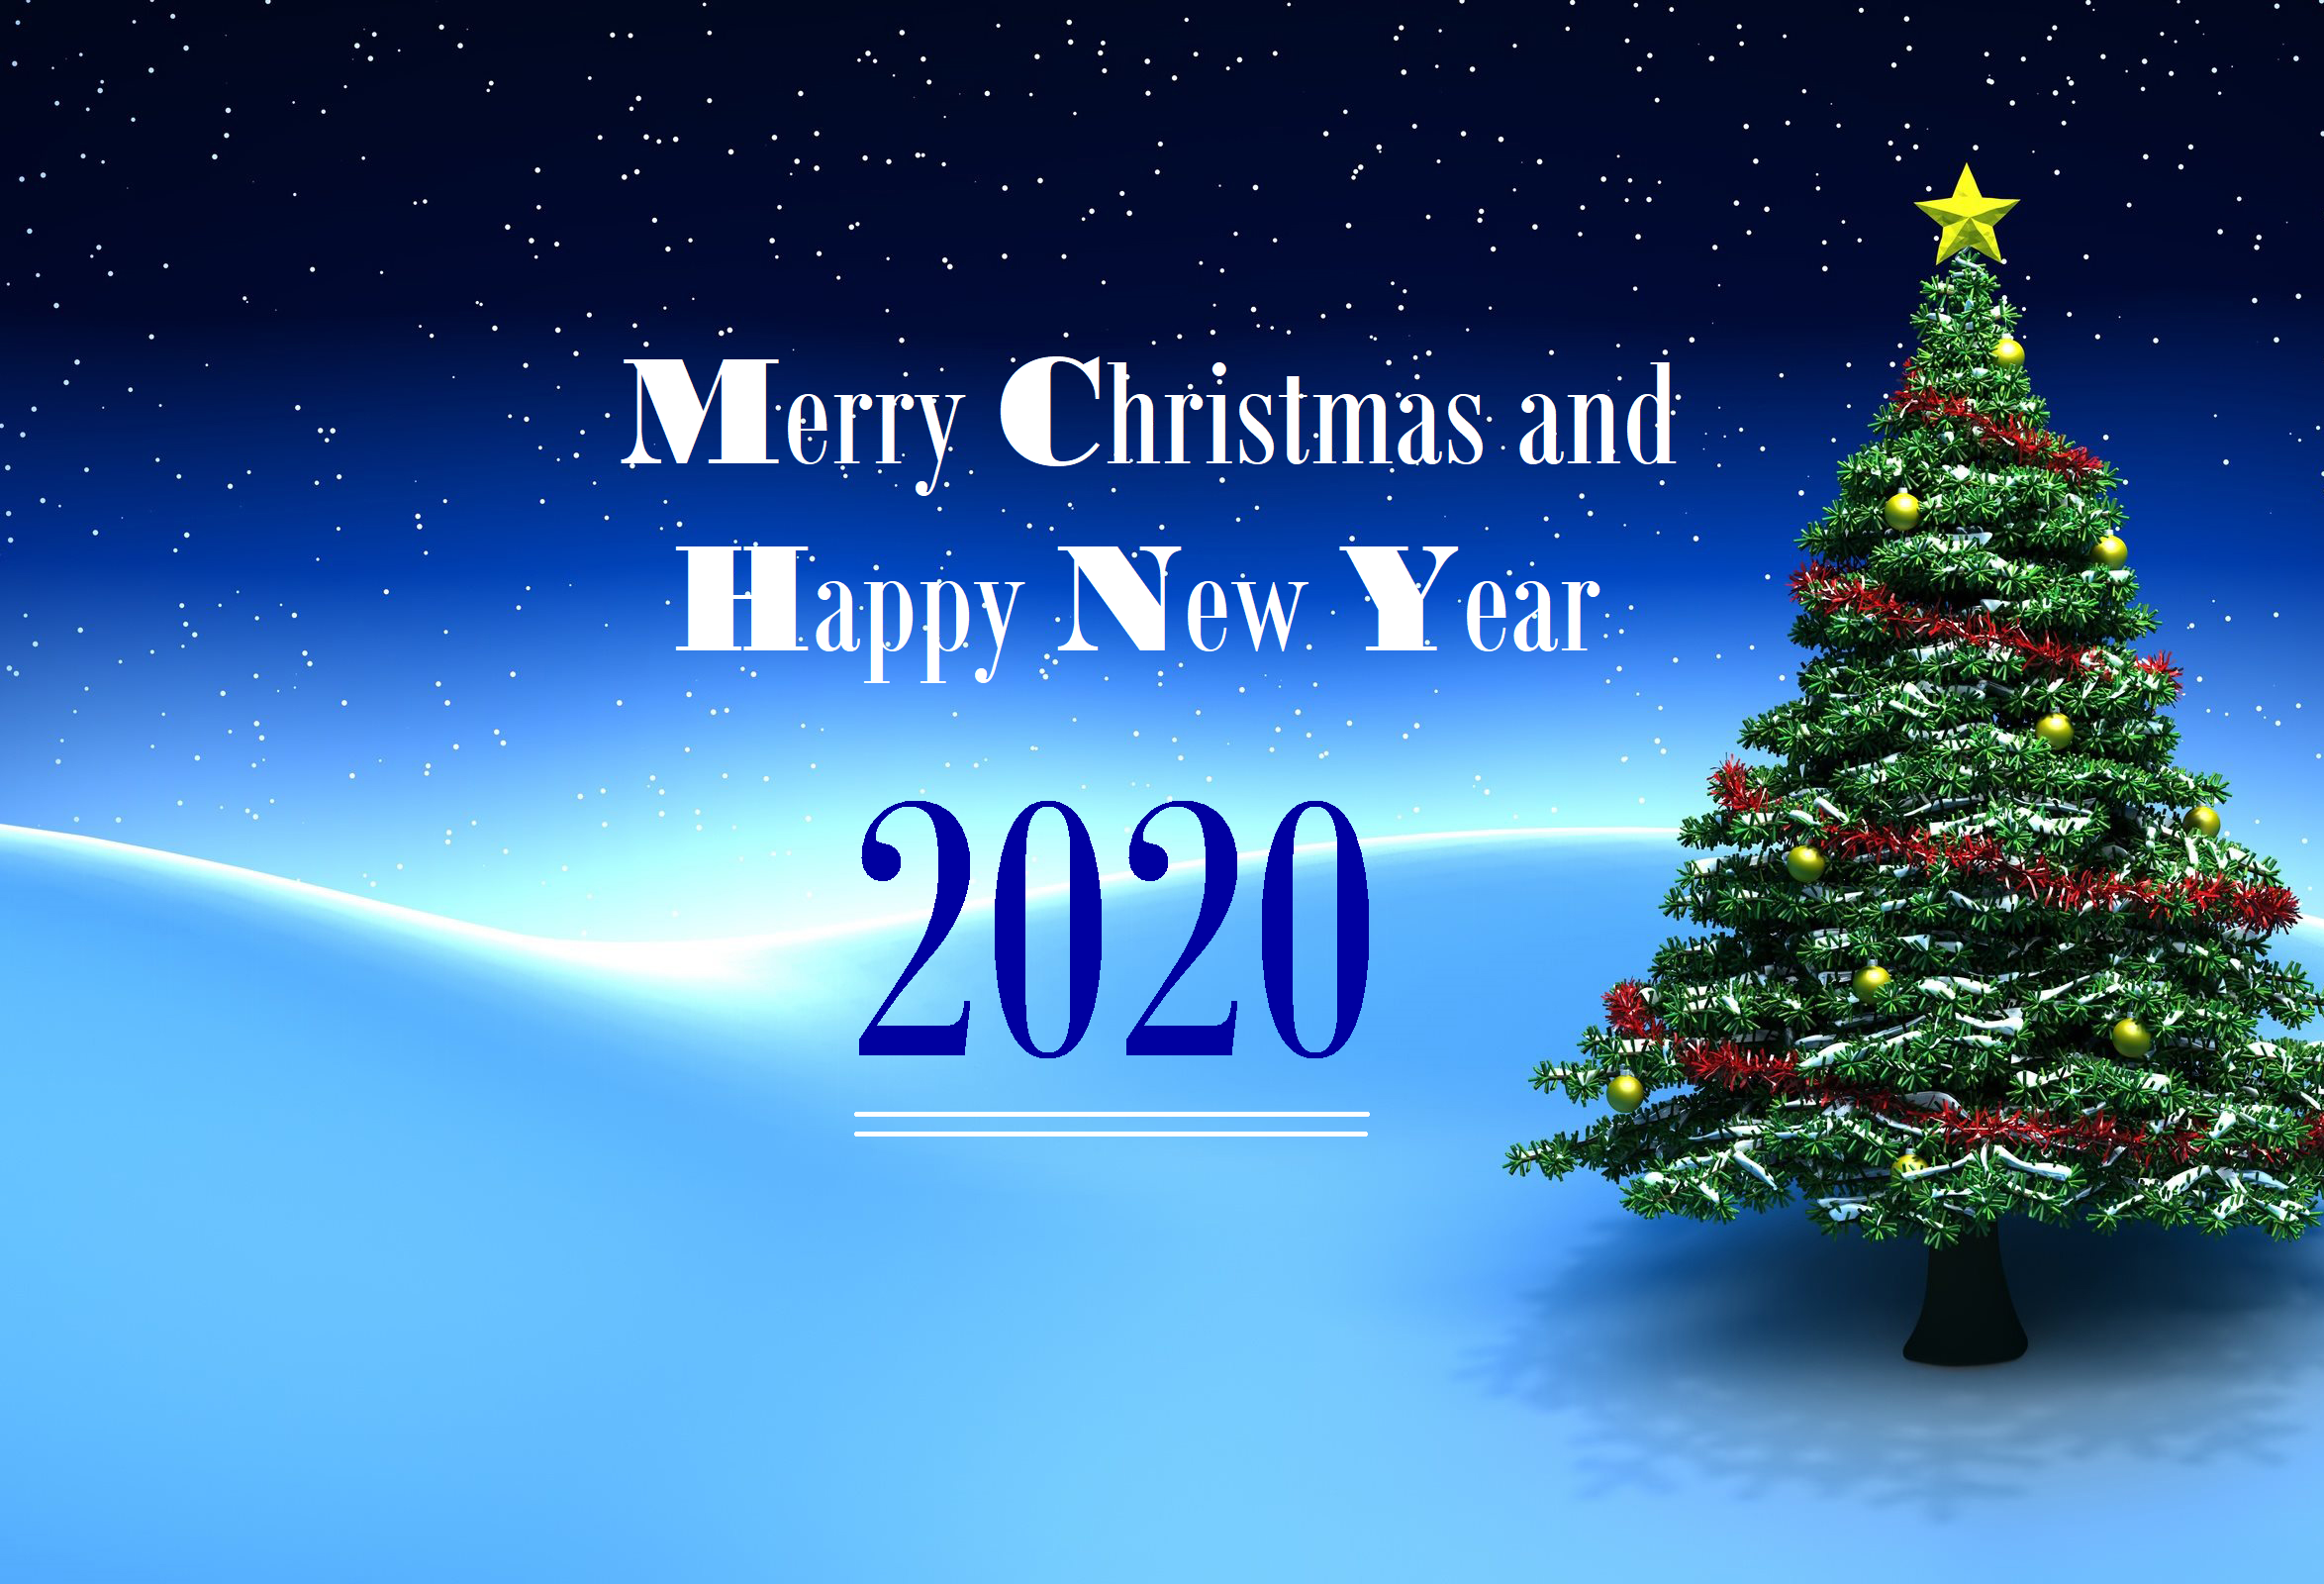 download New Year 2020 HD Wallpaper Background Image 2348x1600